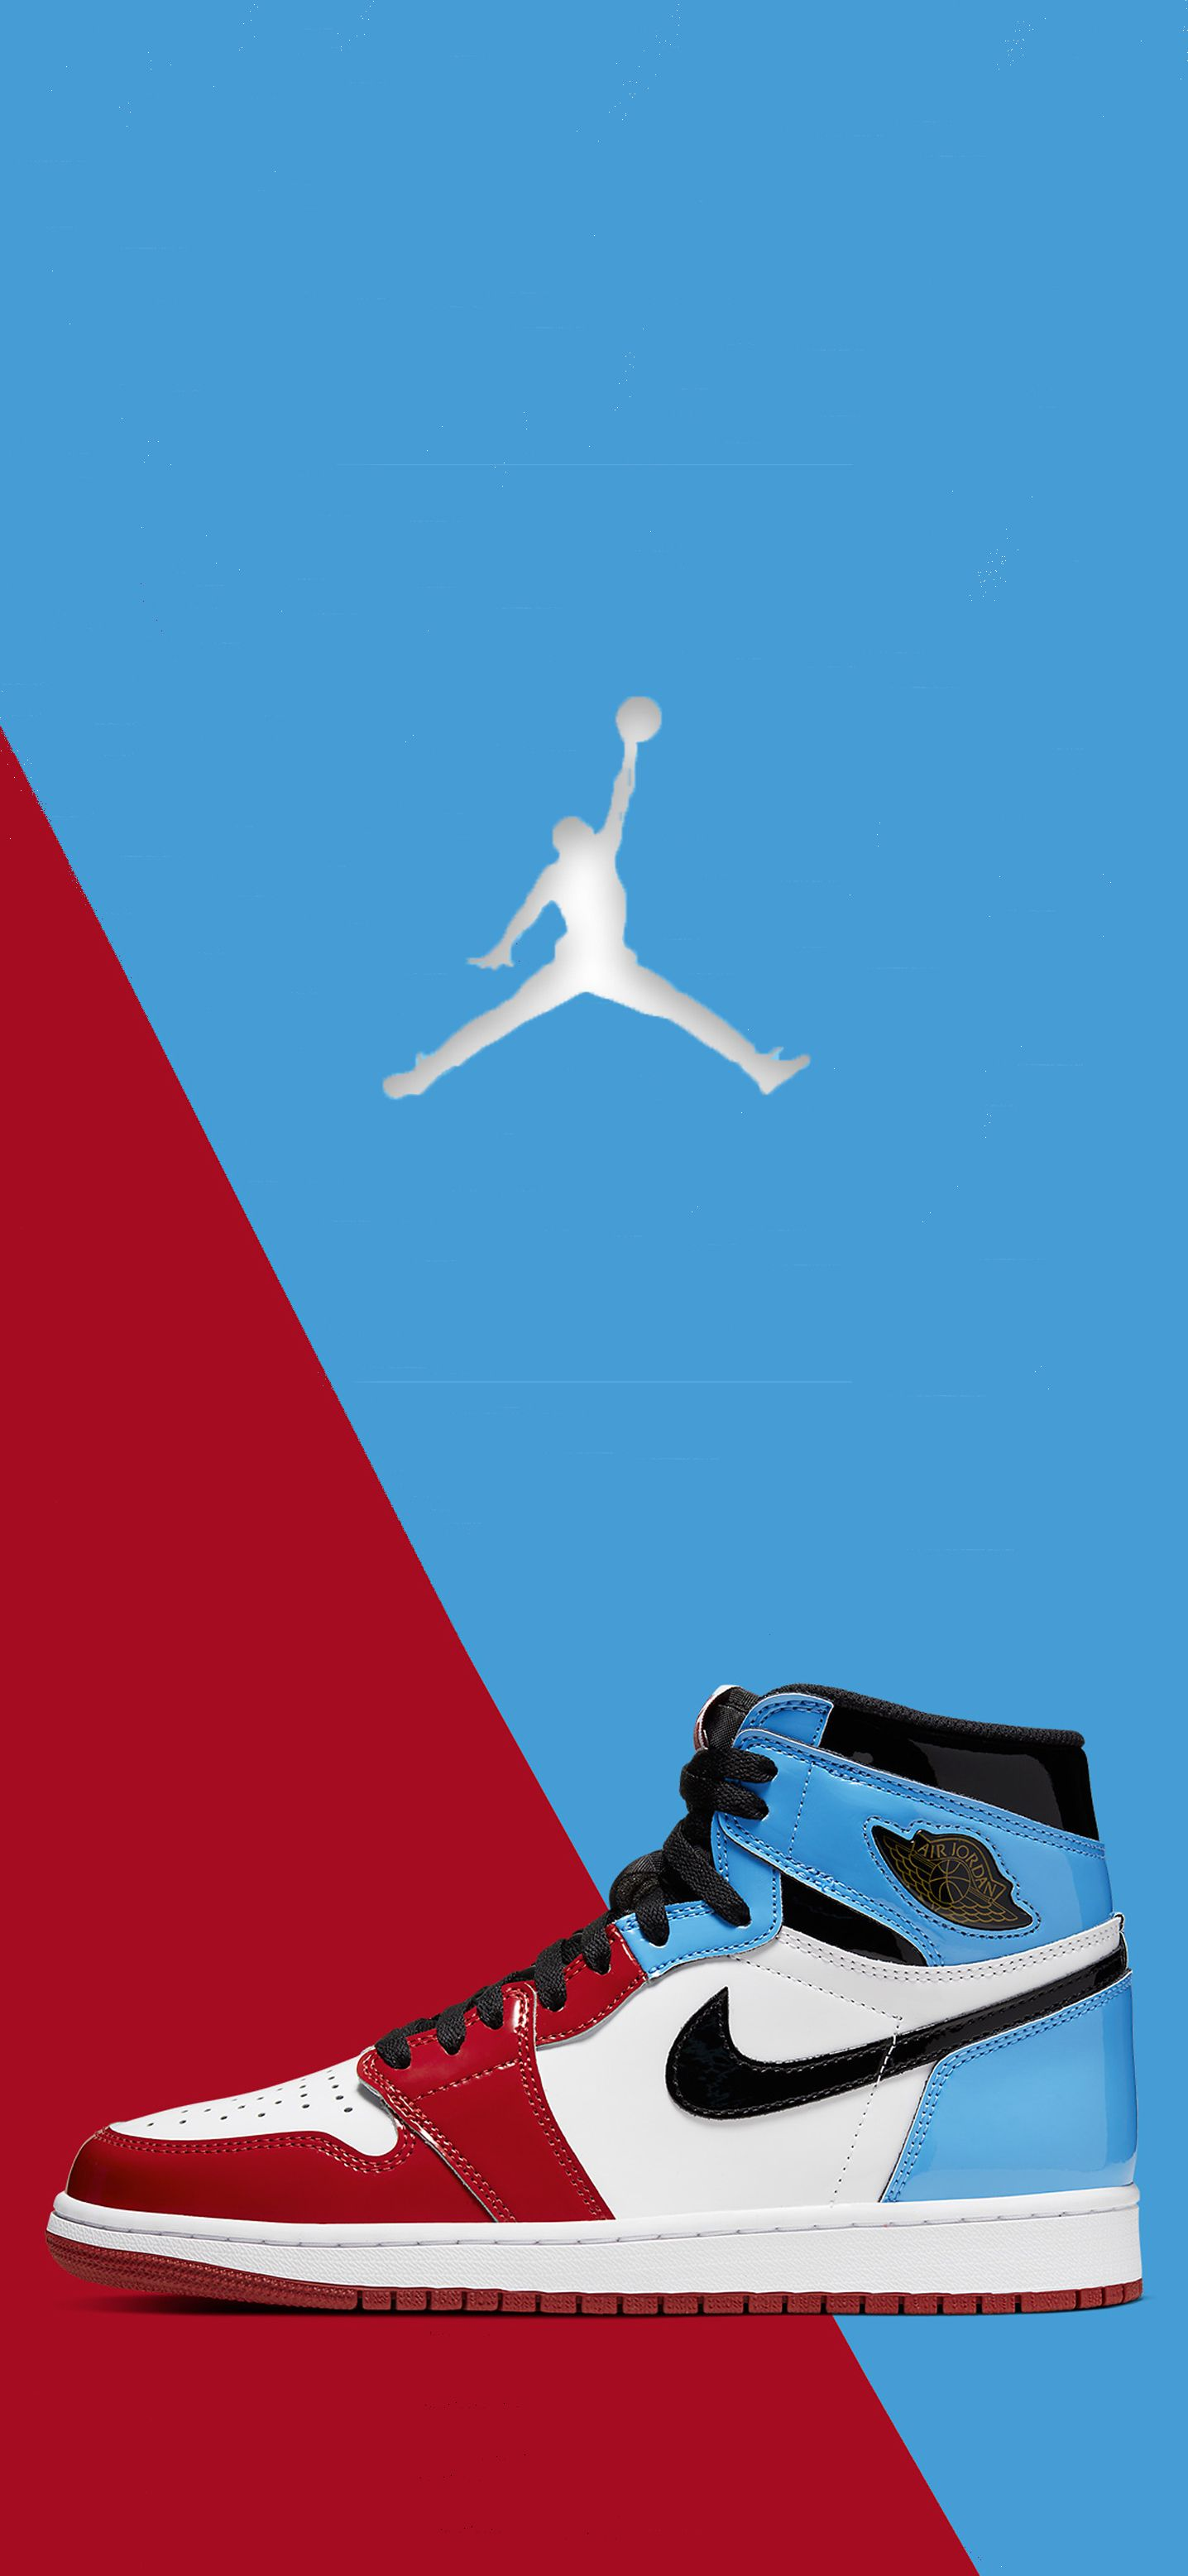 Fearless Jordan 1 In 2020 Jordan Logo Wallpaper Hypebeast Wallpaper Trippy Iphone Wallpaper